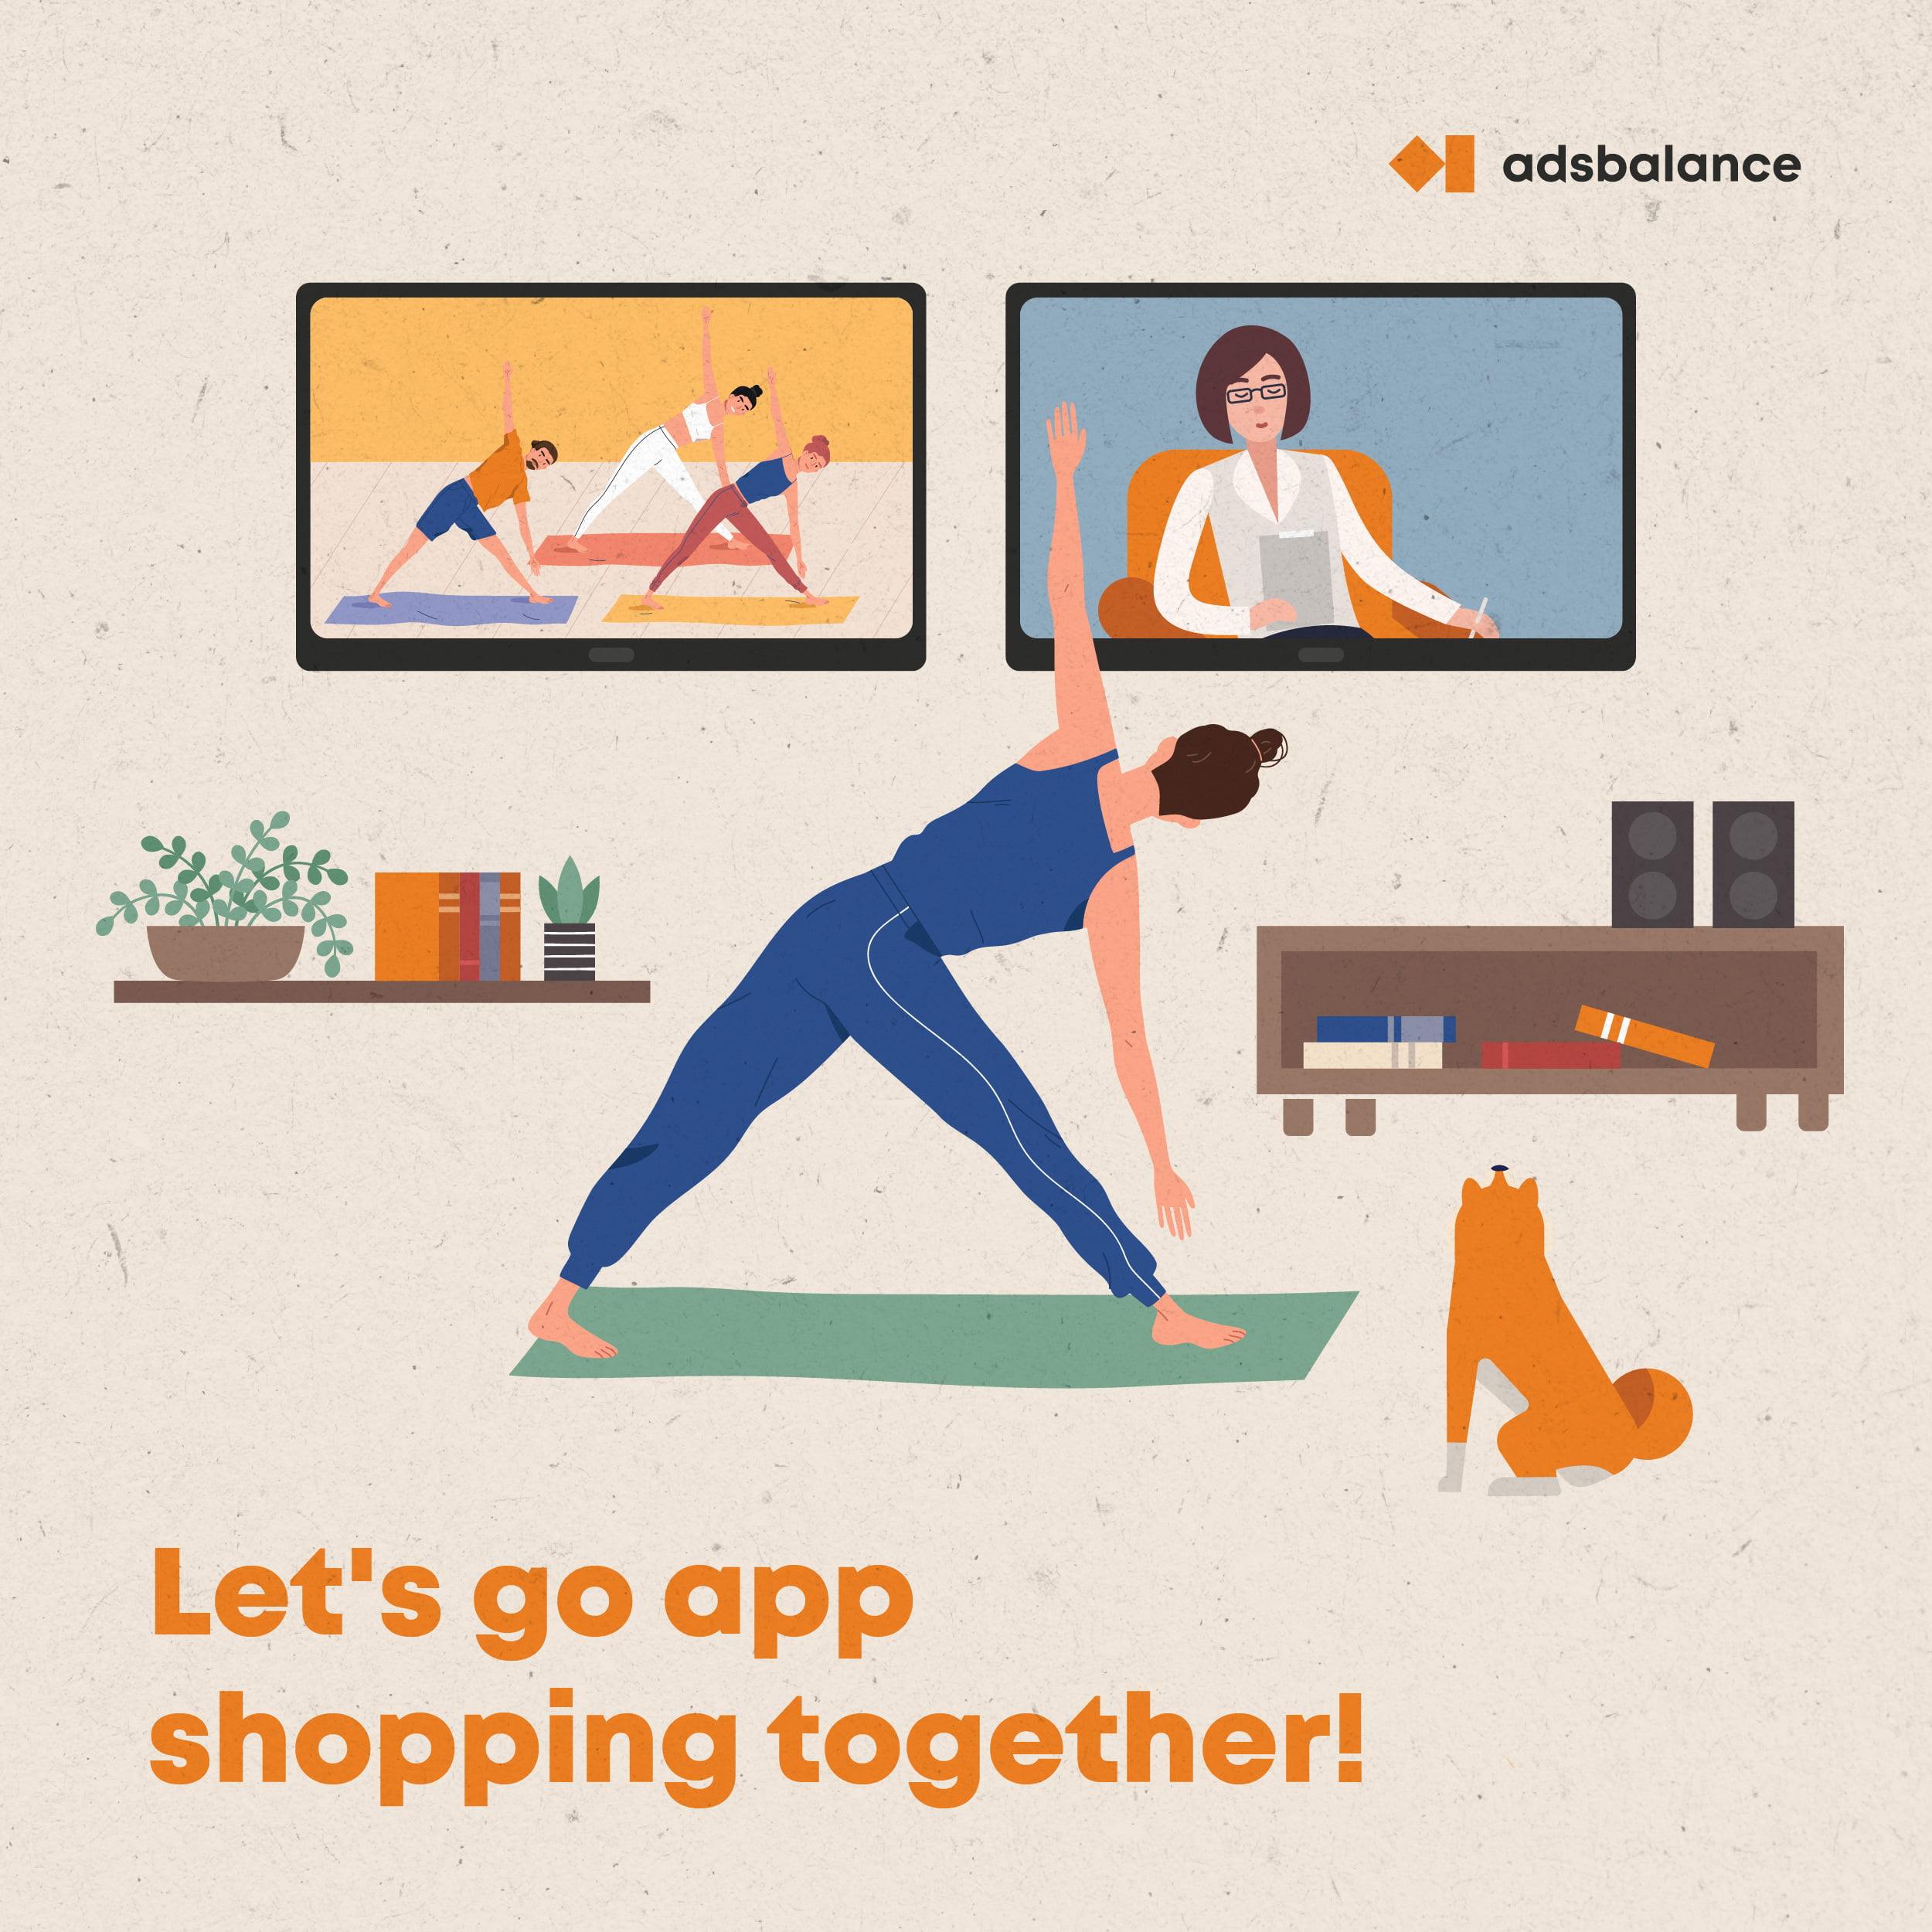 Let's go app shopping together, or Not Another Selection of Quarantine Apps